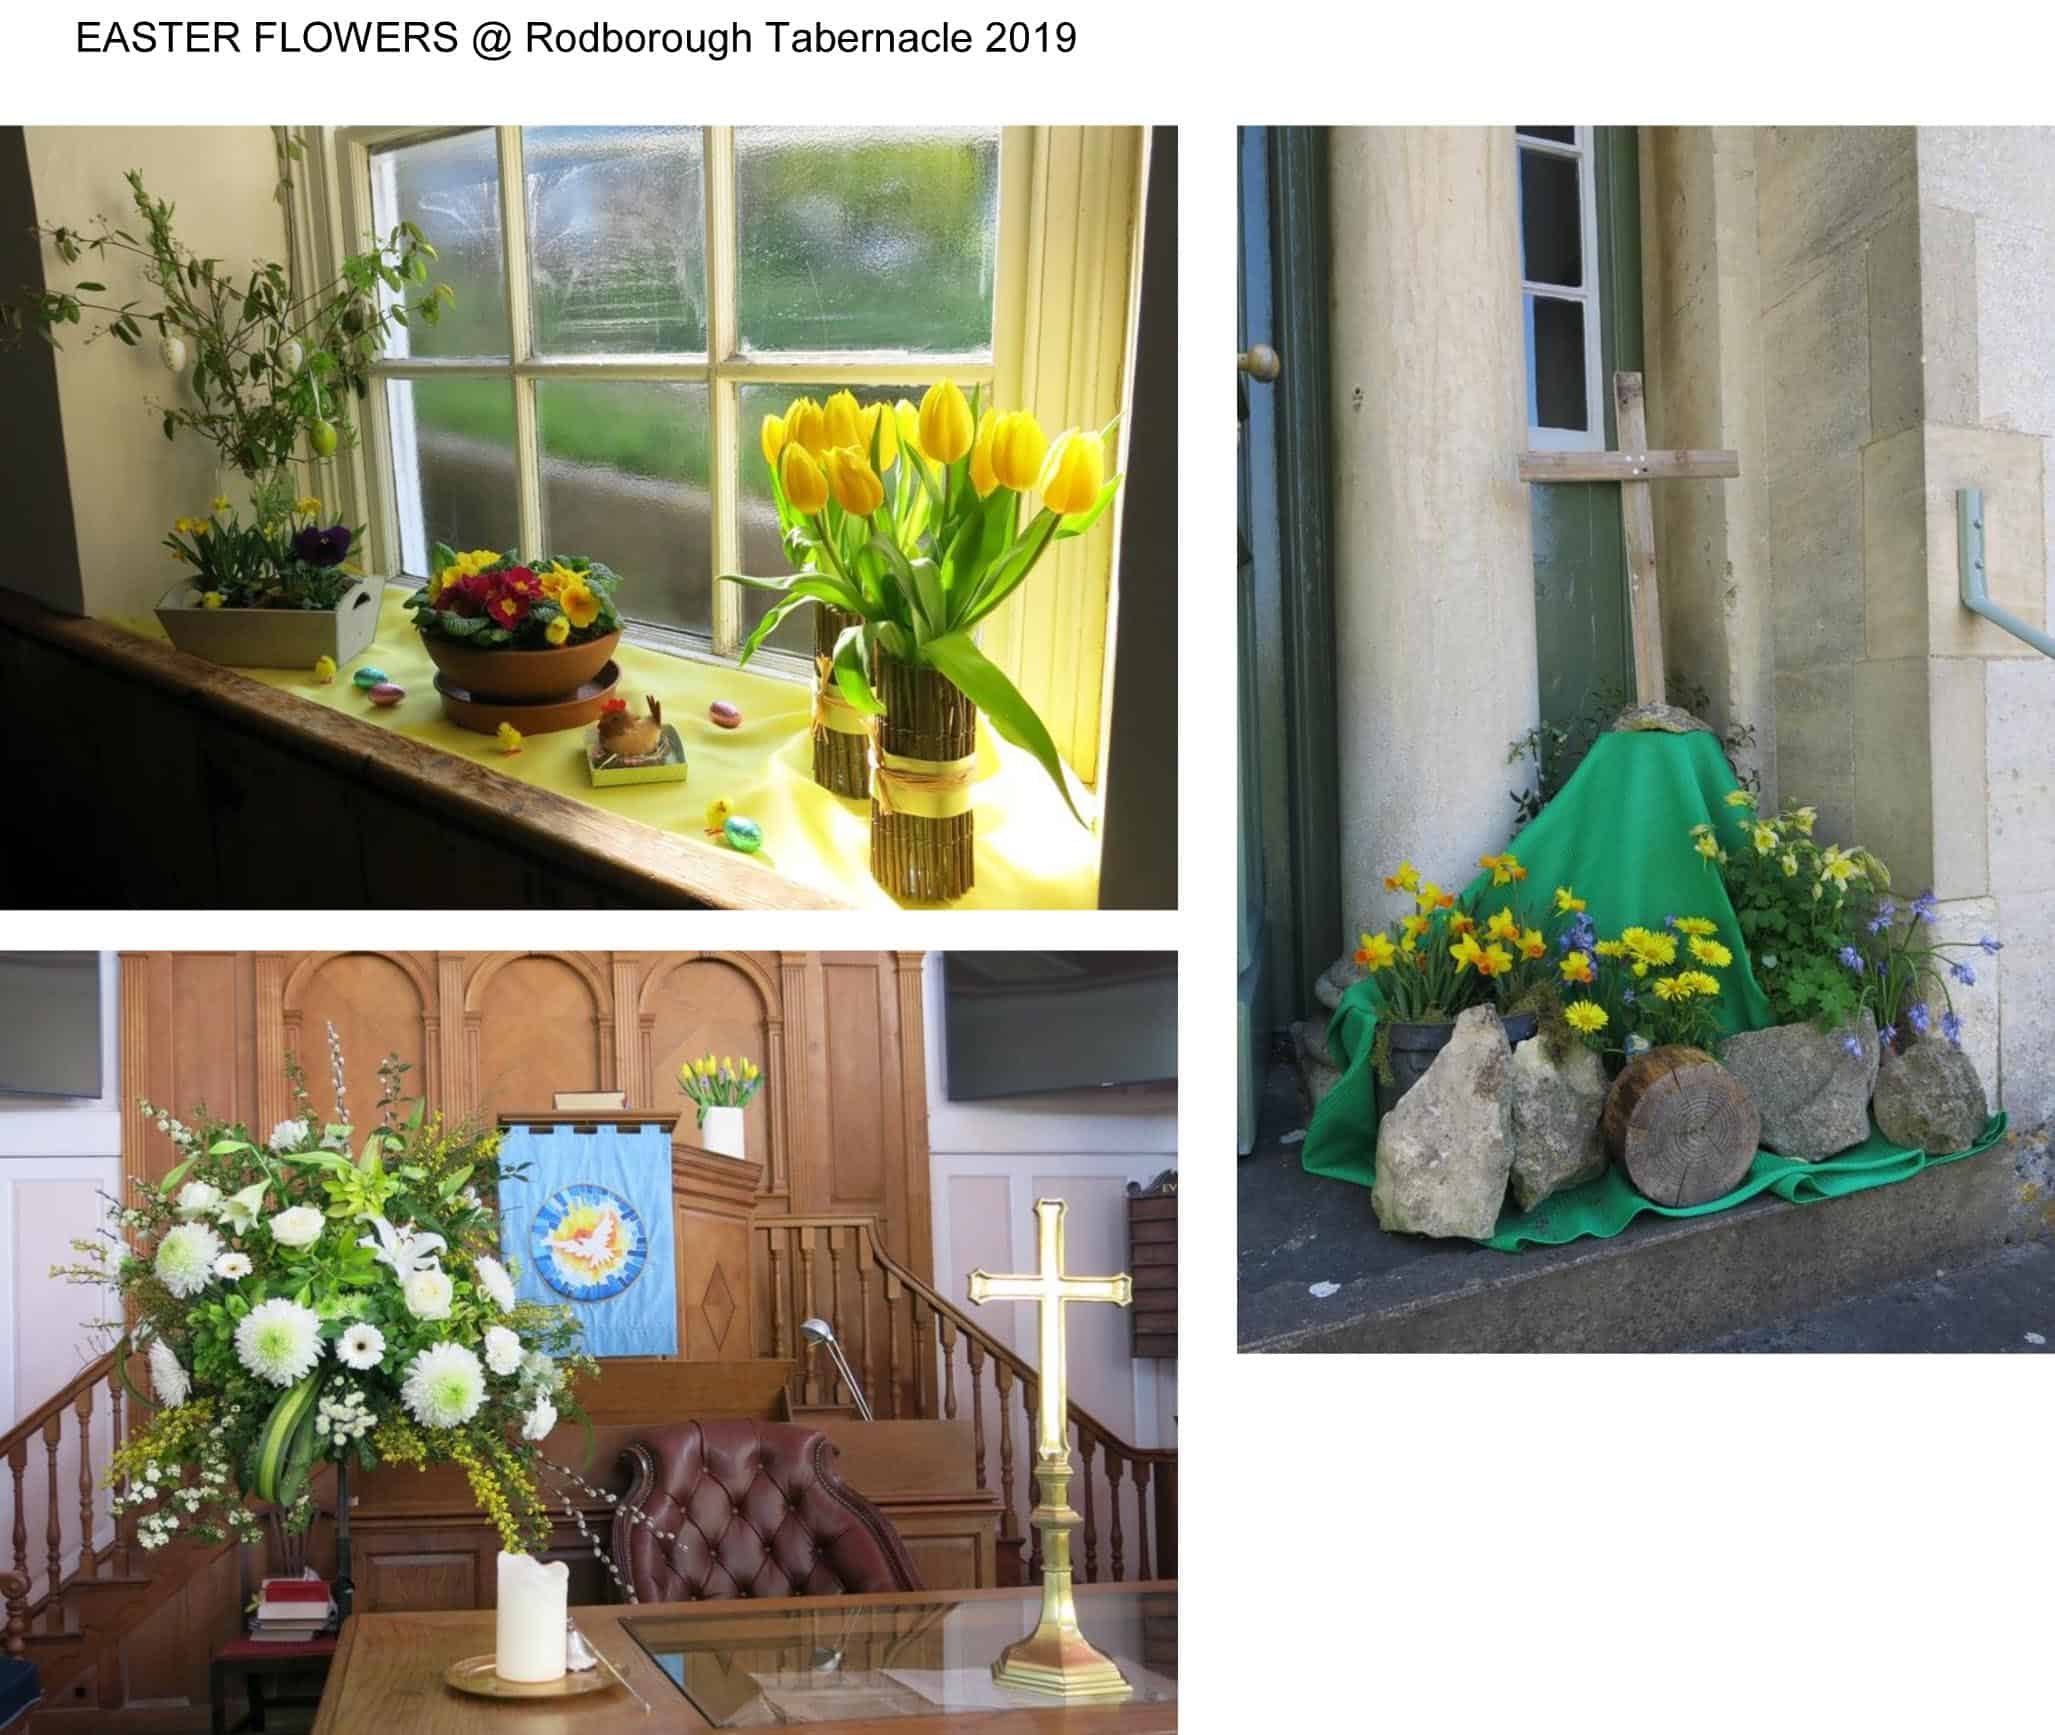 EASTER FLOWERS @ Rodborough Tabernacle 2019